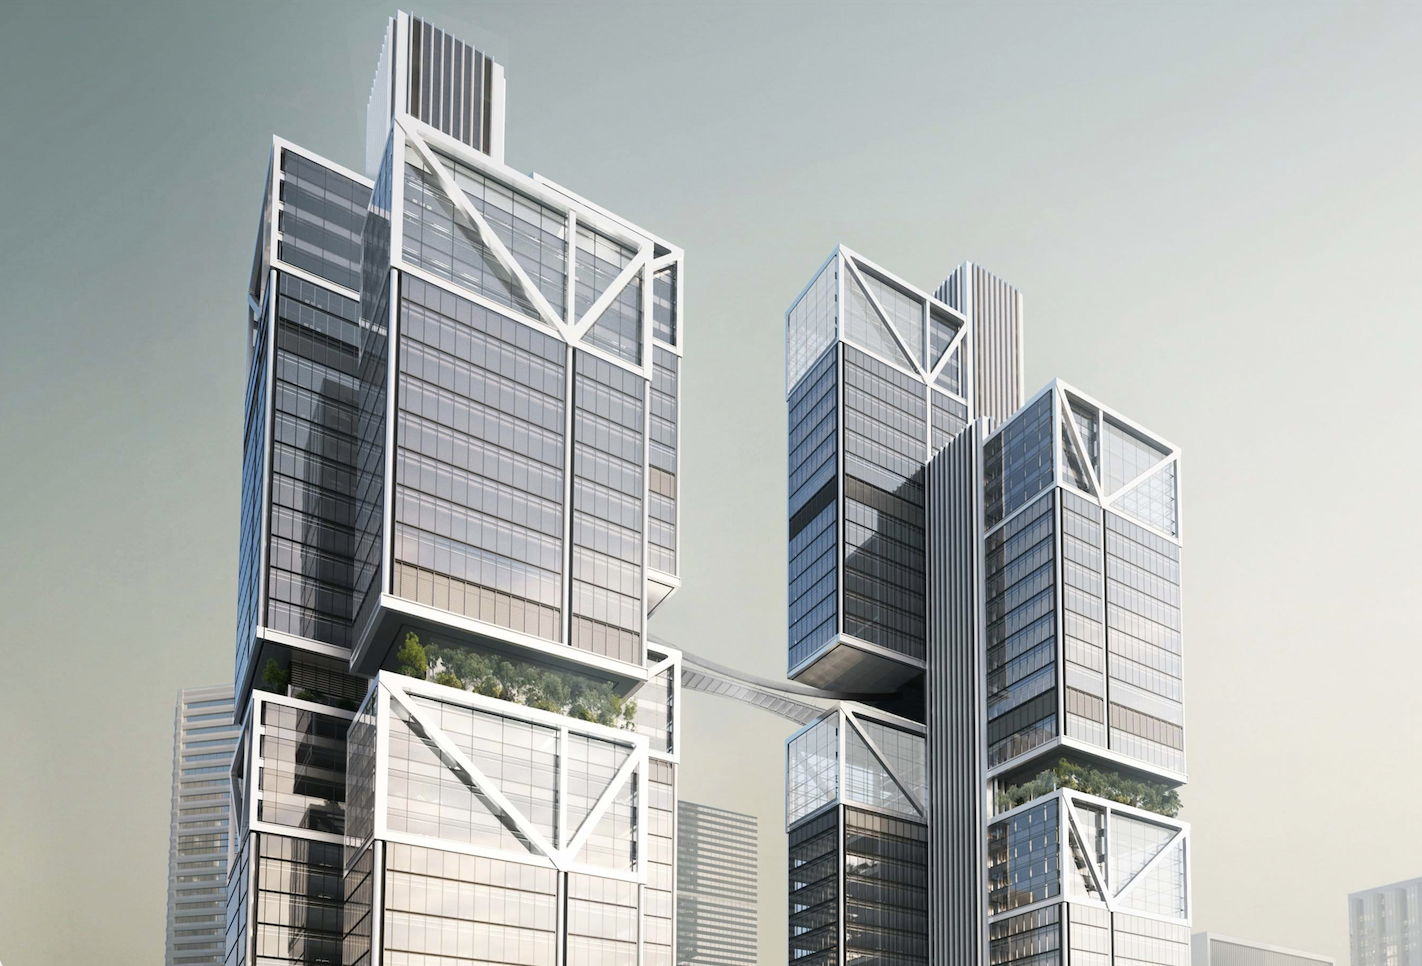 DJI future headquarters, being built by Foster and Partners